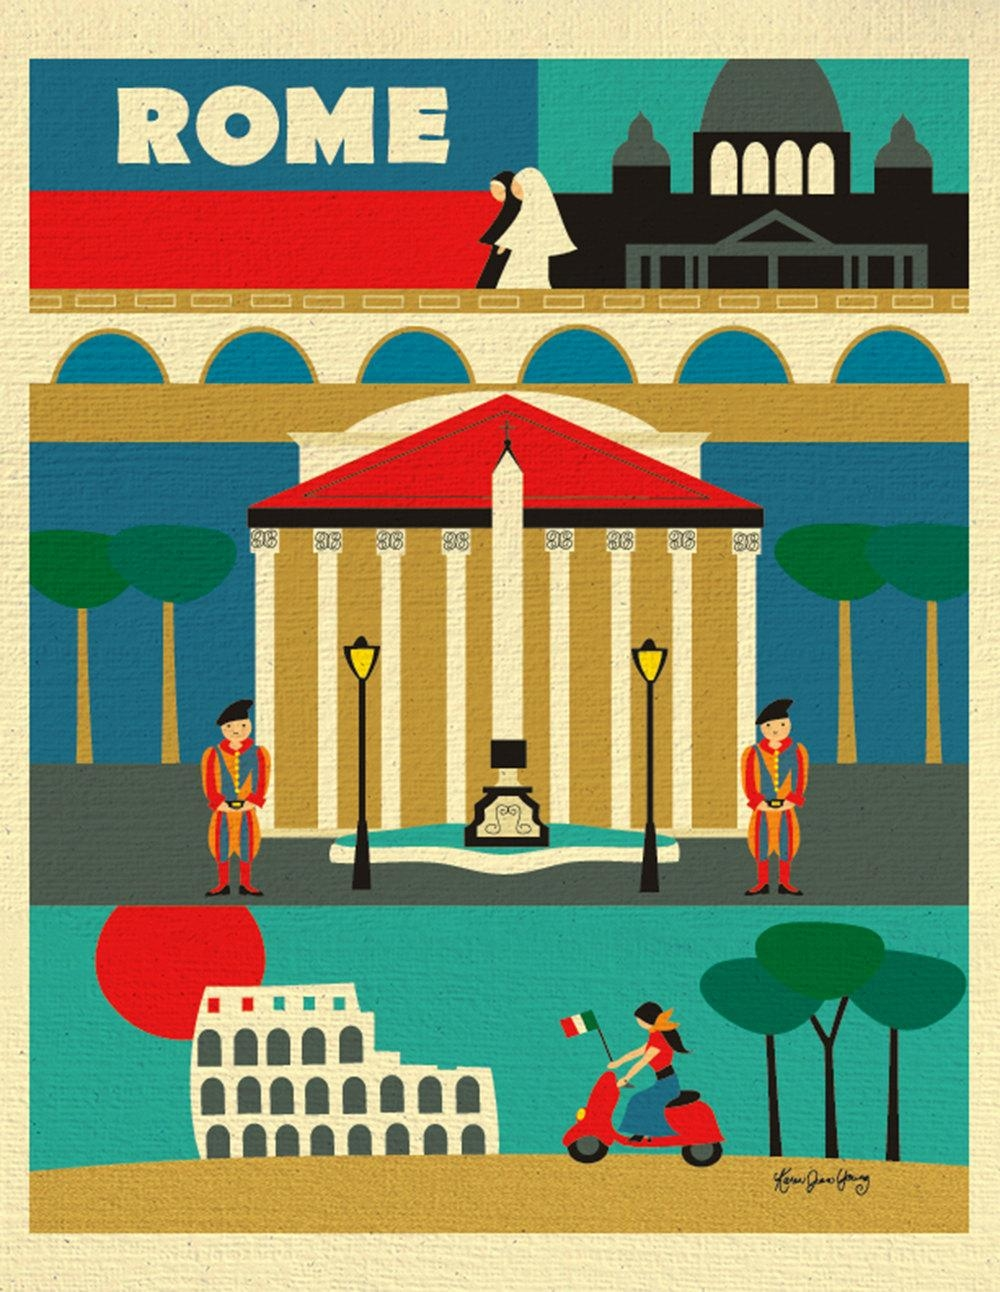 Rome Print Rome Wall Art Italy Travel Poster Rome Map Rome Within Italian Travel Wall Art (Image 10 of 20)